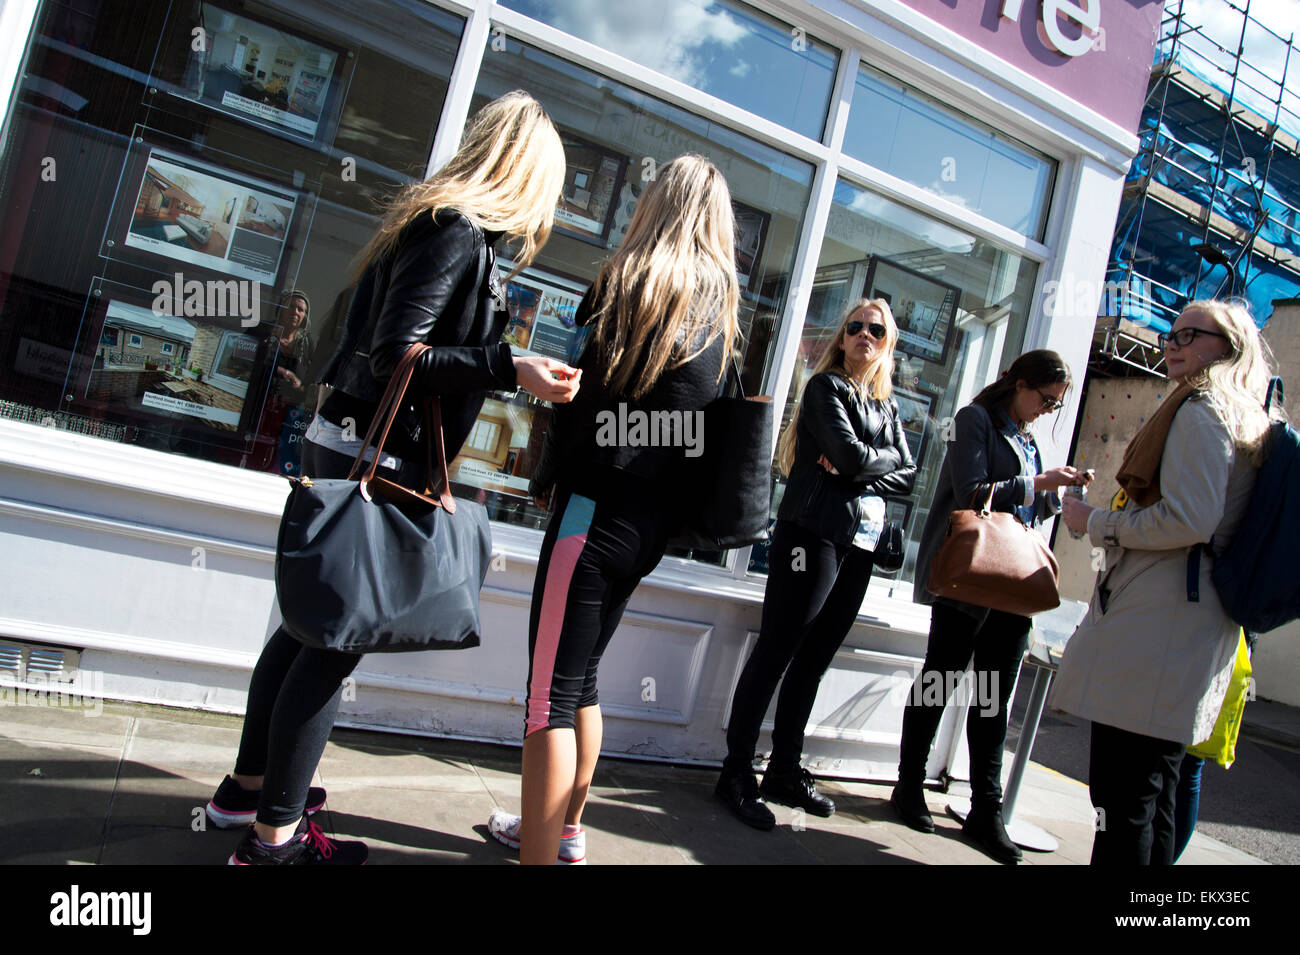 Hackney Spring 2015. Broadway market. Estate agents and blondes - two young women inspect photos of houses - Stock Image